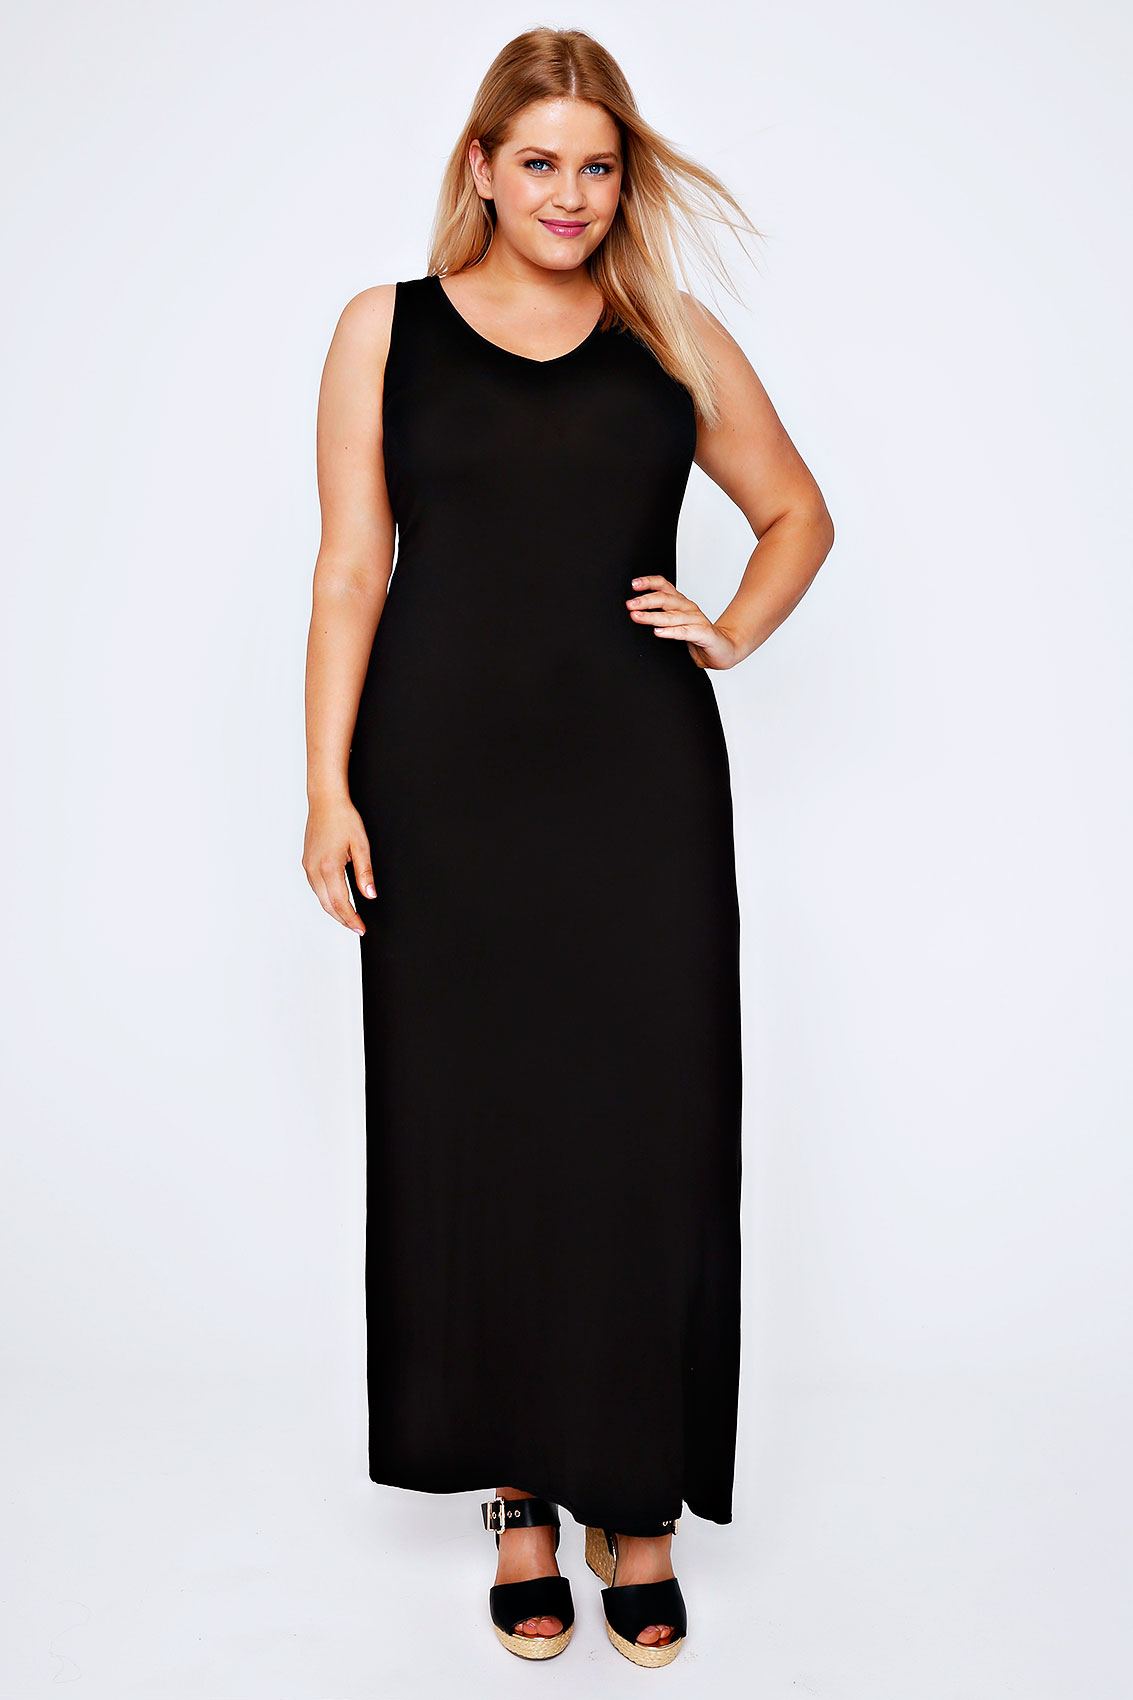 Maxi Dresses for Maximum Style. Maxi dresses are the perfect addition to any fall wardrobe. Wear the latest in women's maxi dresses to brighten the long autumn days and bring that stylish look to every day.